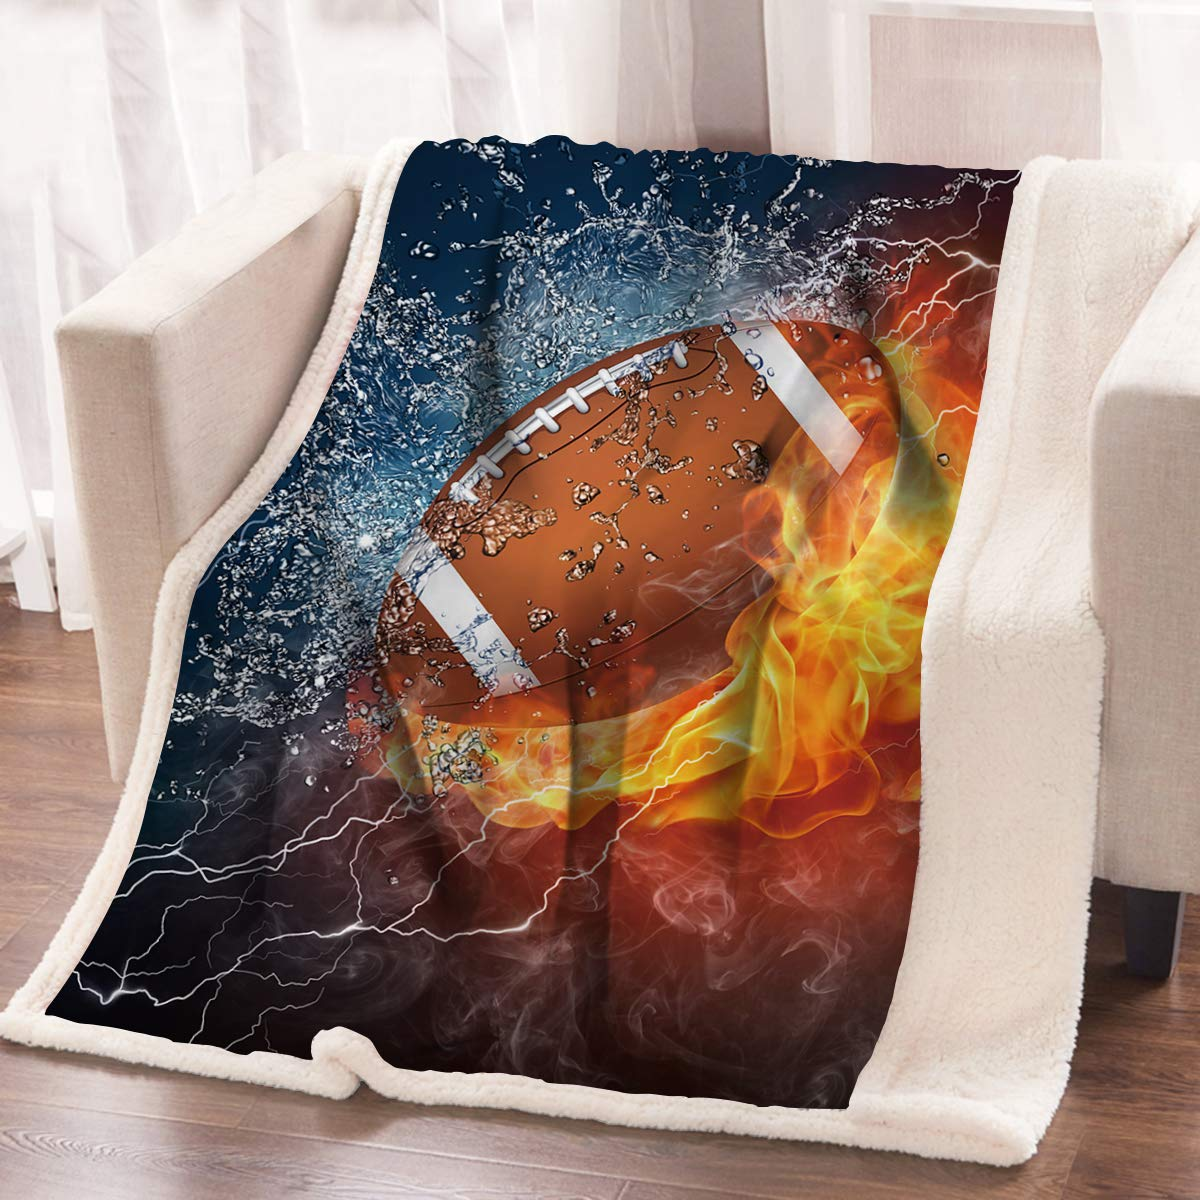 ARIGHTEX American Football Fleece Throw Blanket Kids Boy Sports Printed Sherpa Blanket Fluffy Blanket for Bed or Couch (50 x 60 Inches) by ARIGHTEX